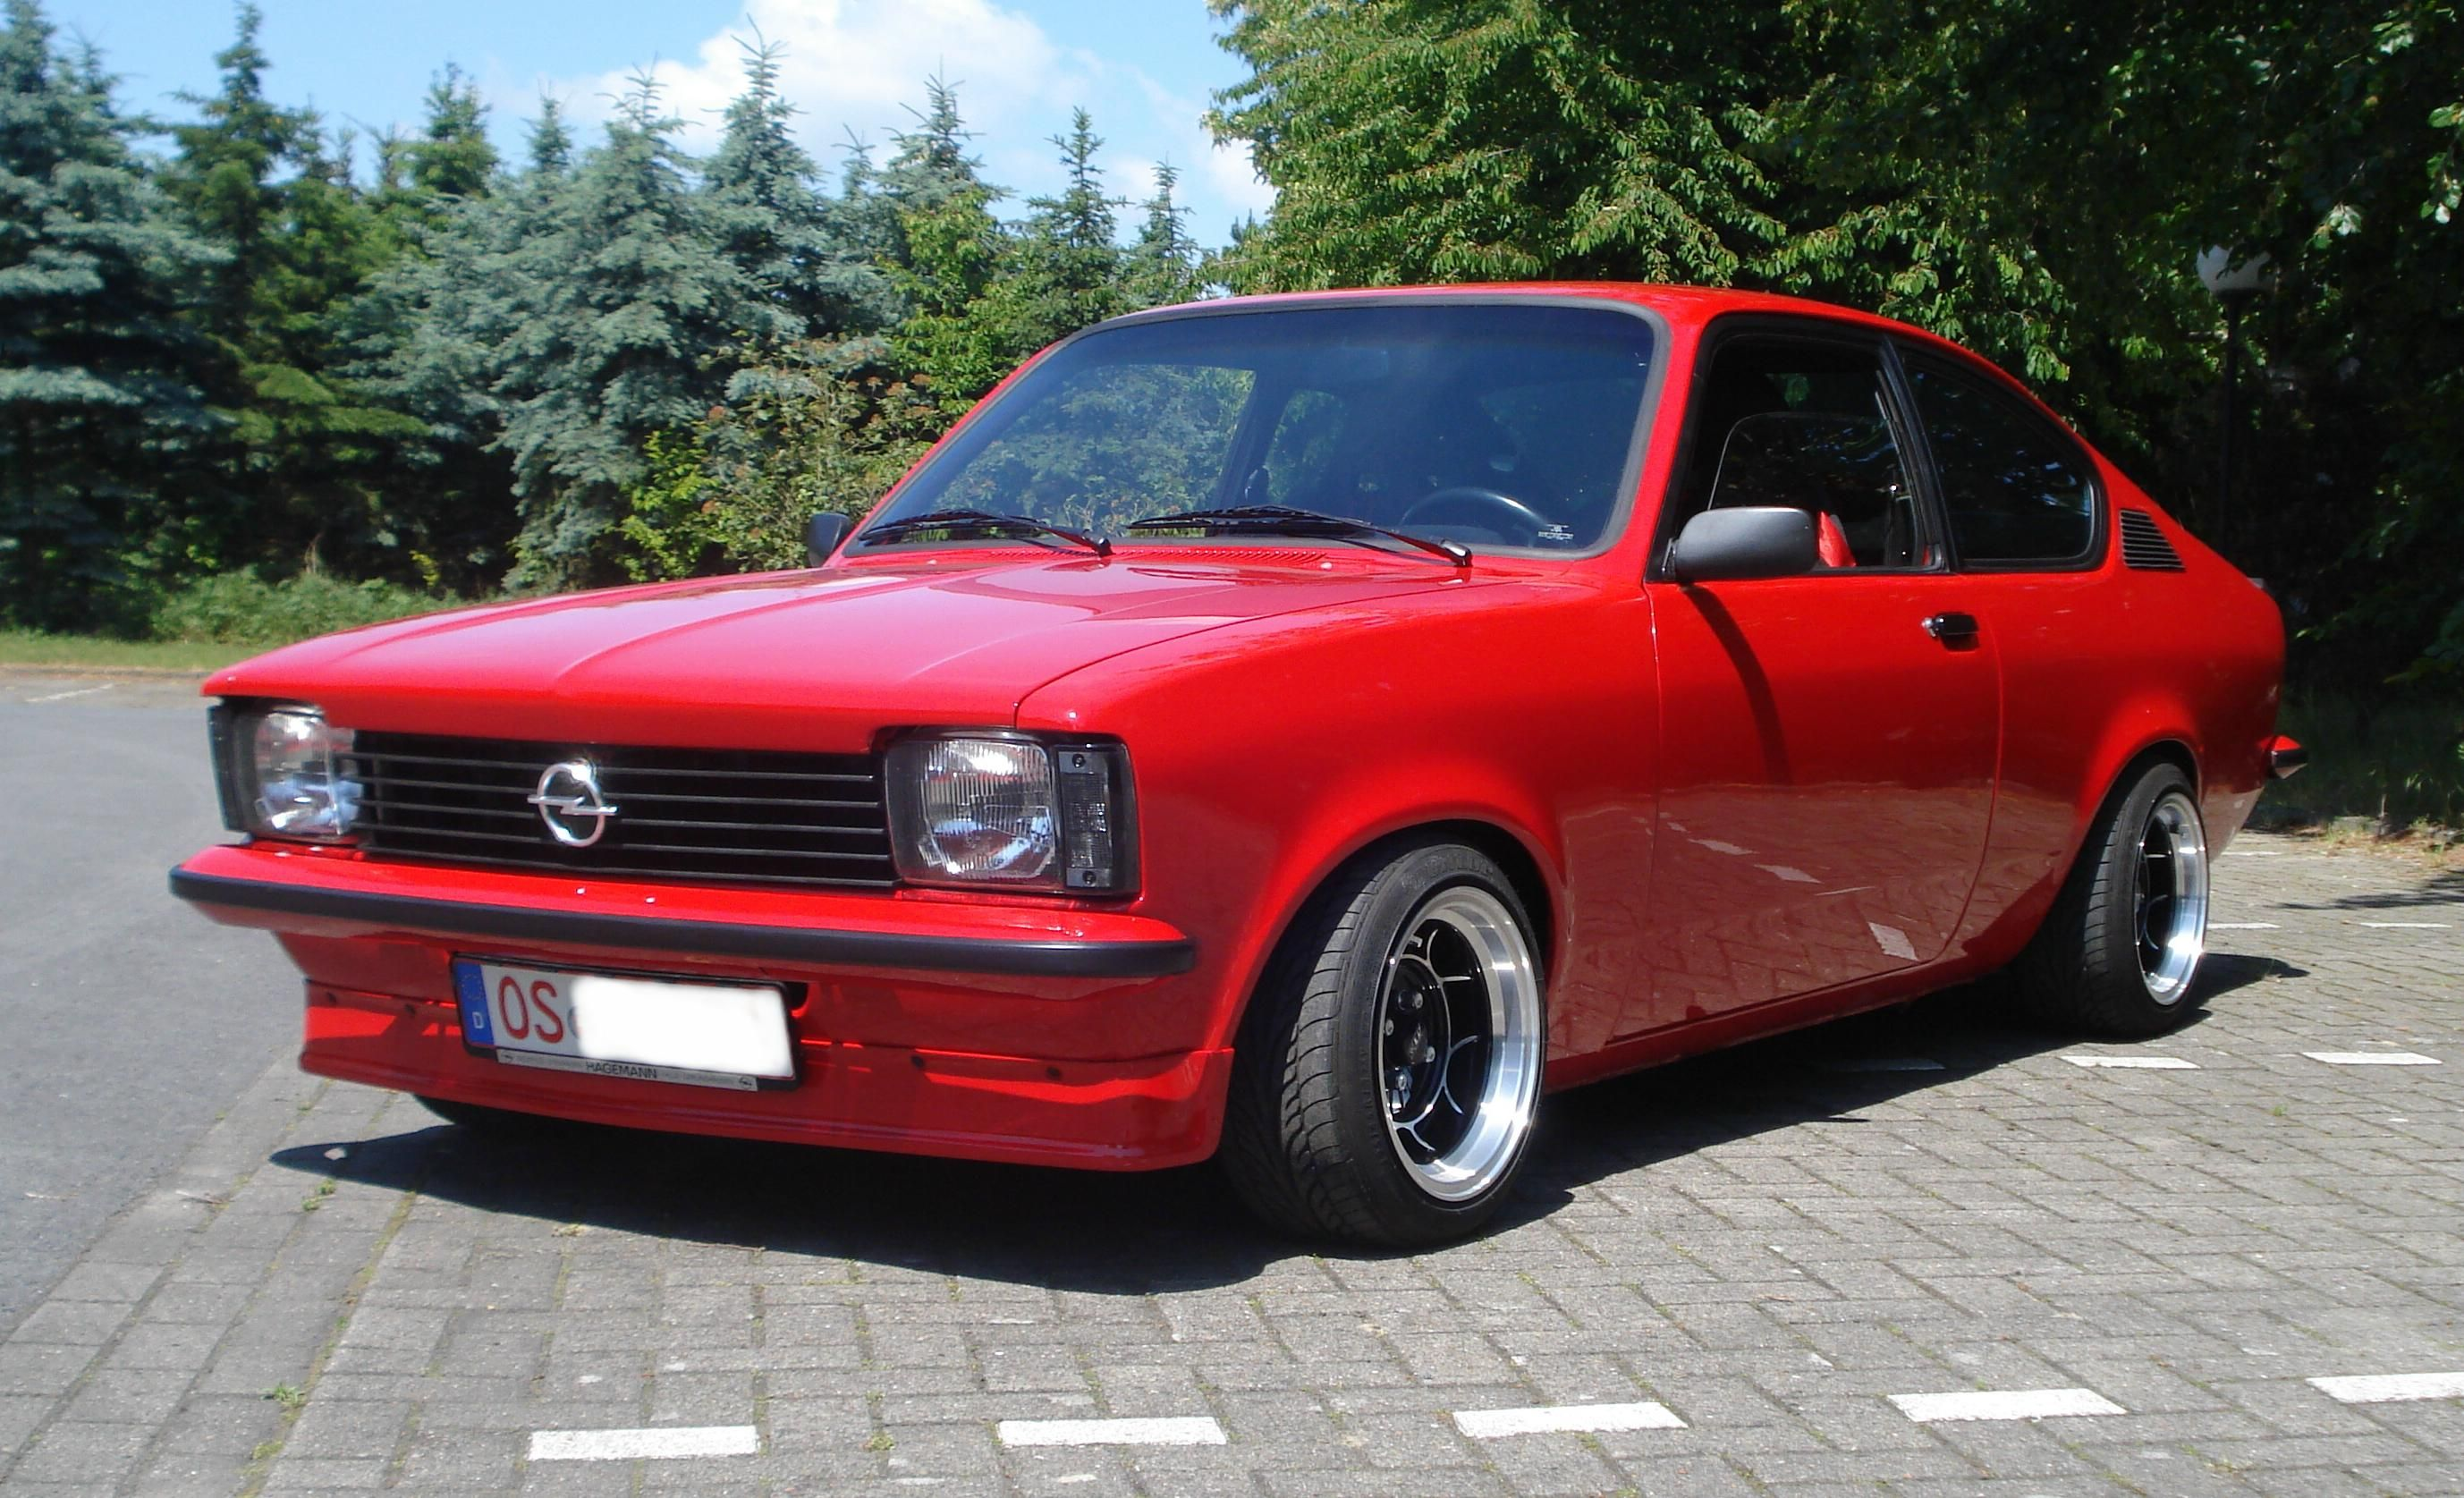 1000 images about opel kadett c on pinterest. Black Bedroom Furniture Sets. Home Design Ideas